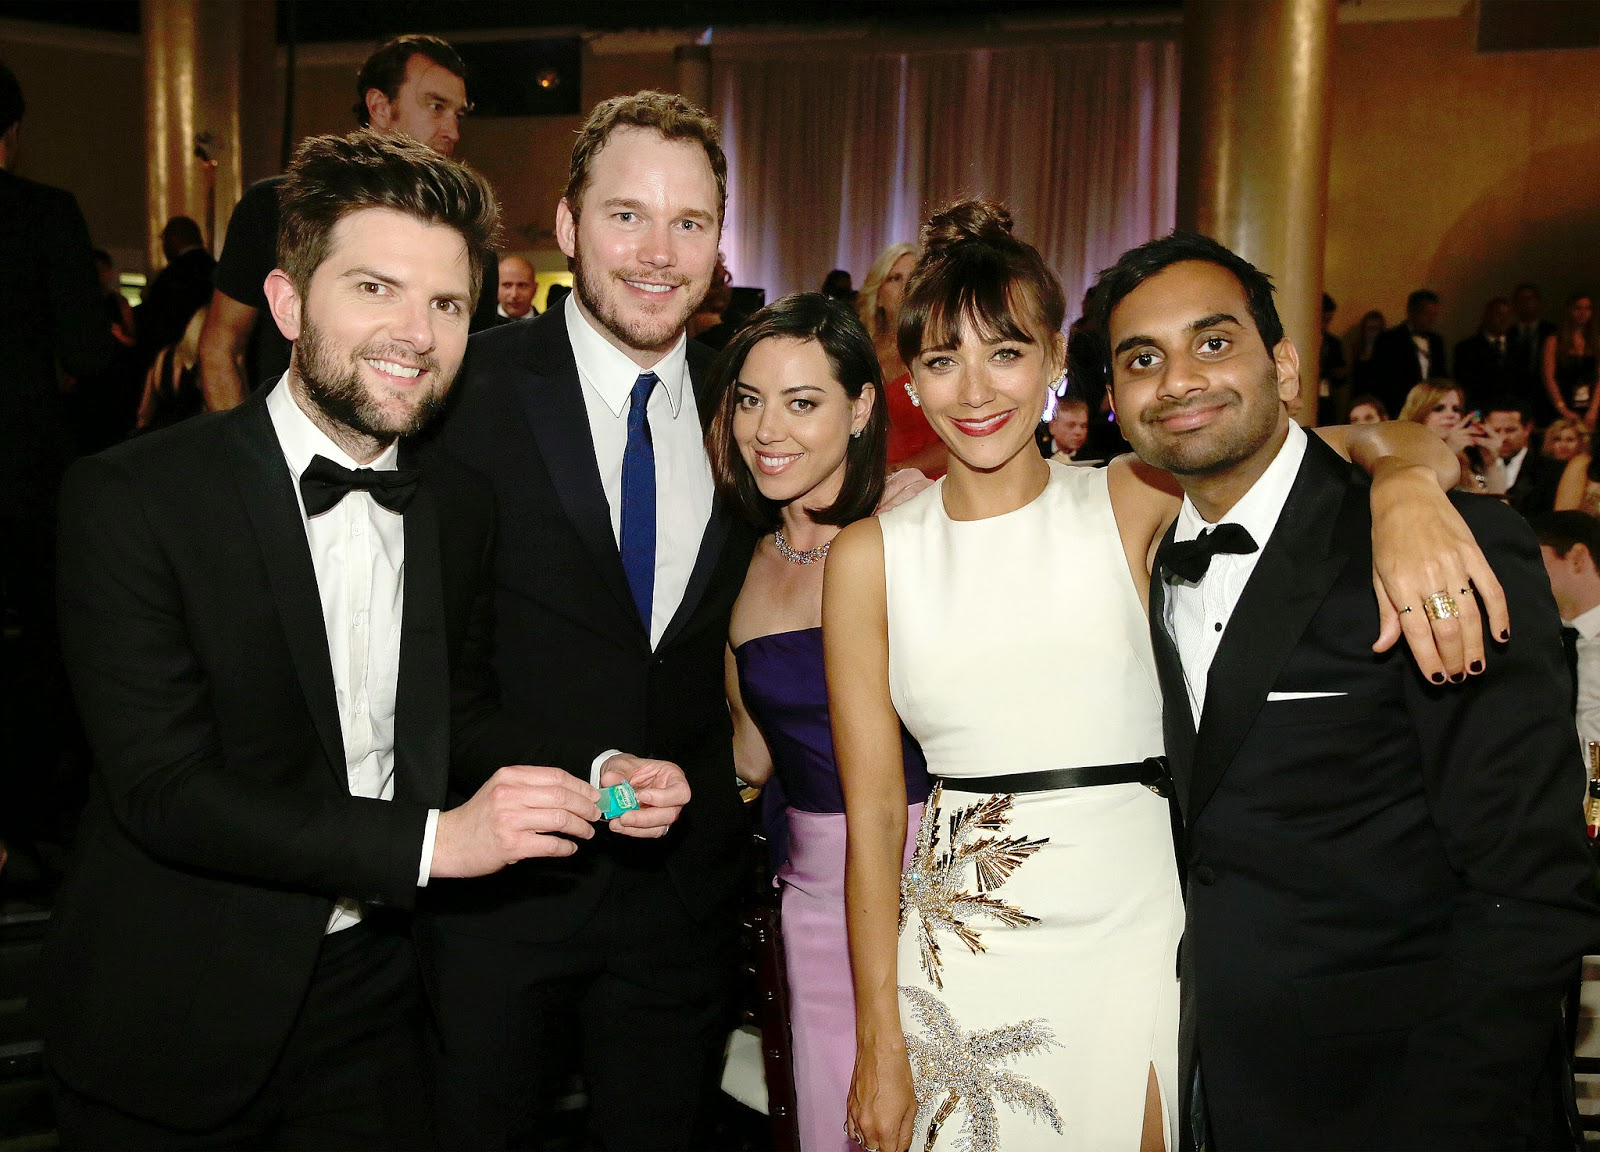 did chris pratt dating aubrey plaza